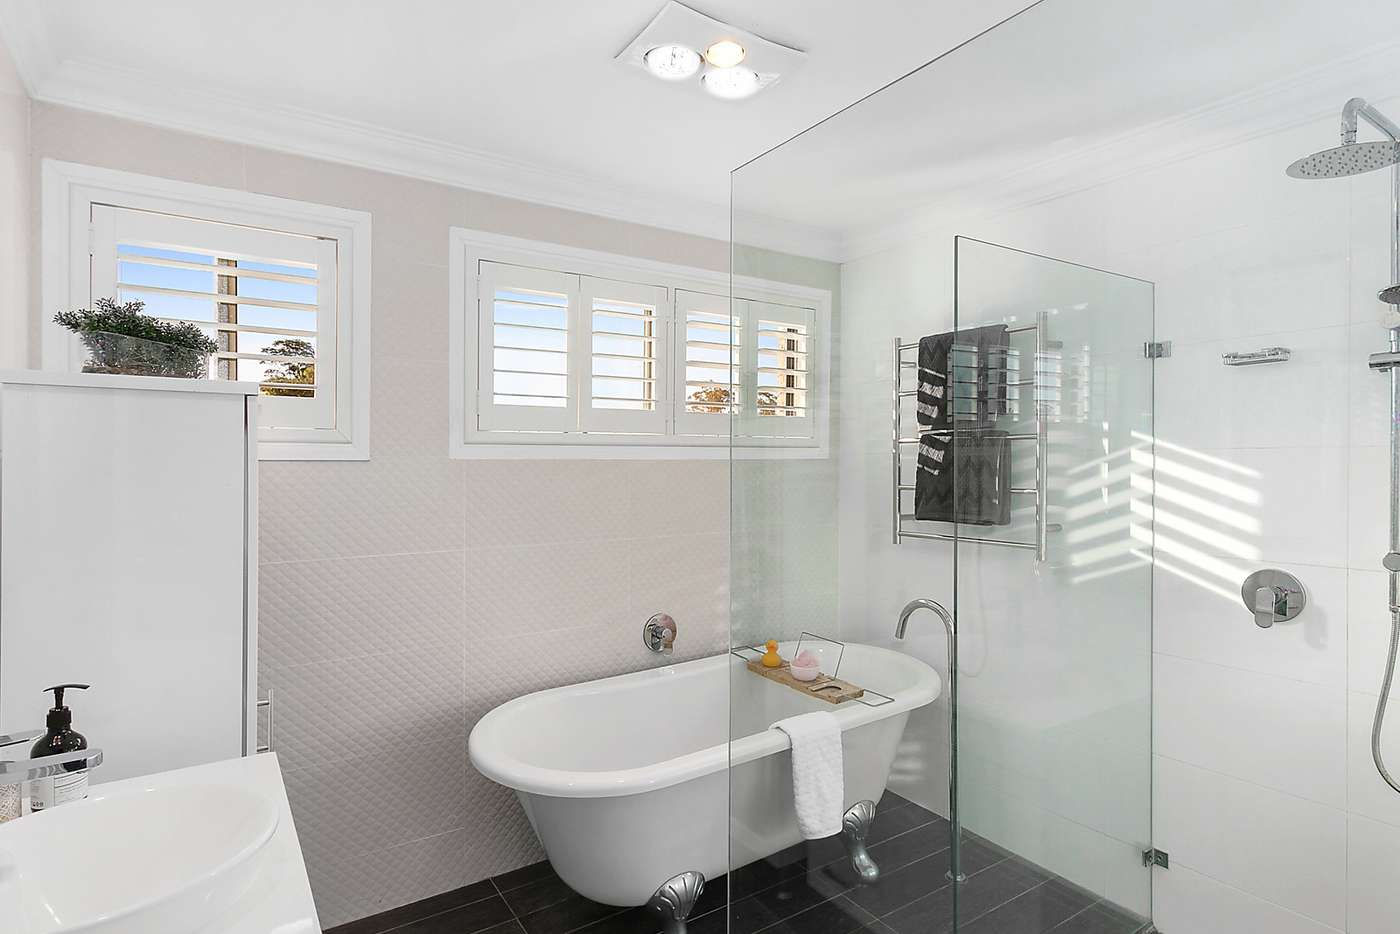 Fifth view of Homely house listing, 51 Wyong Road, Berkeley Vale NSW 2261